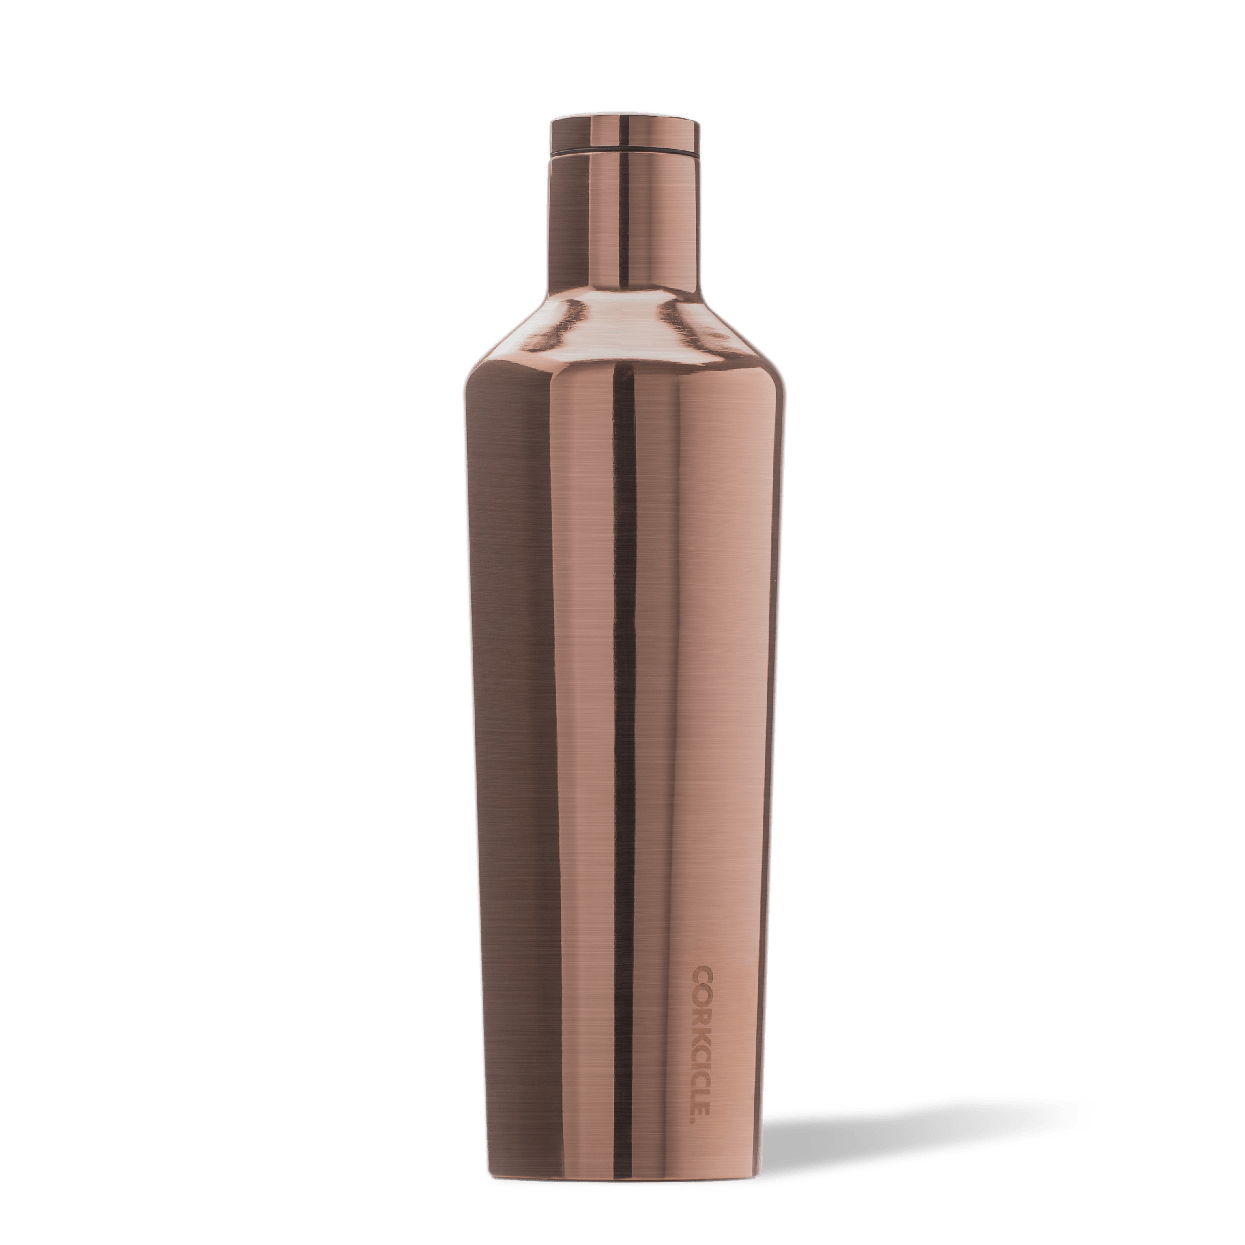 Corkcicle Copper 25oz Canteen Side View.